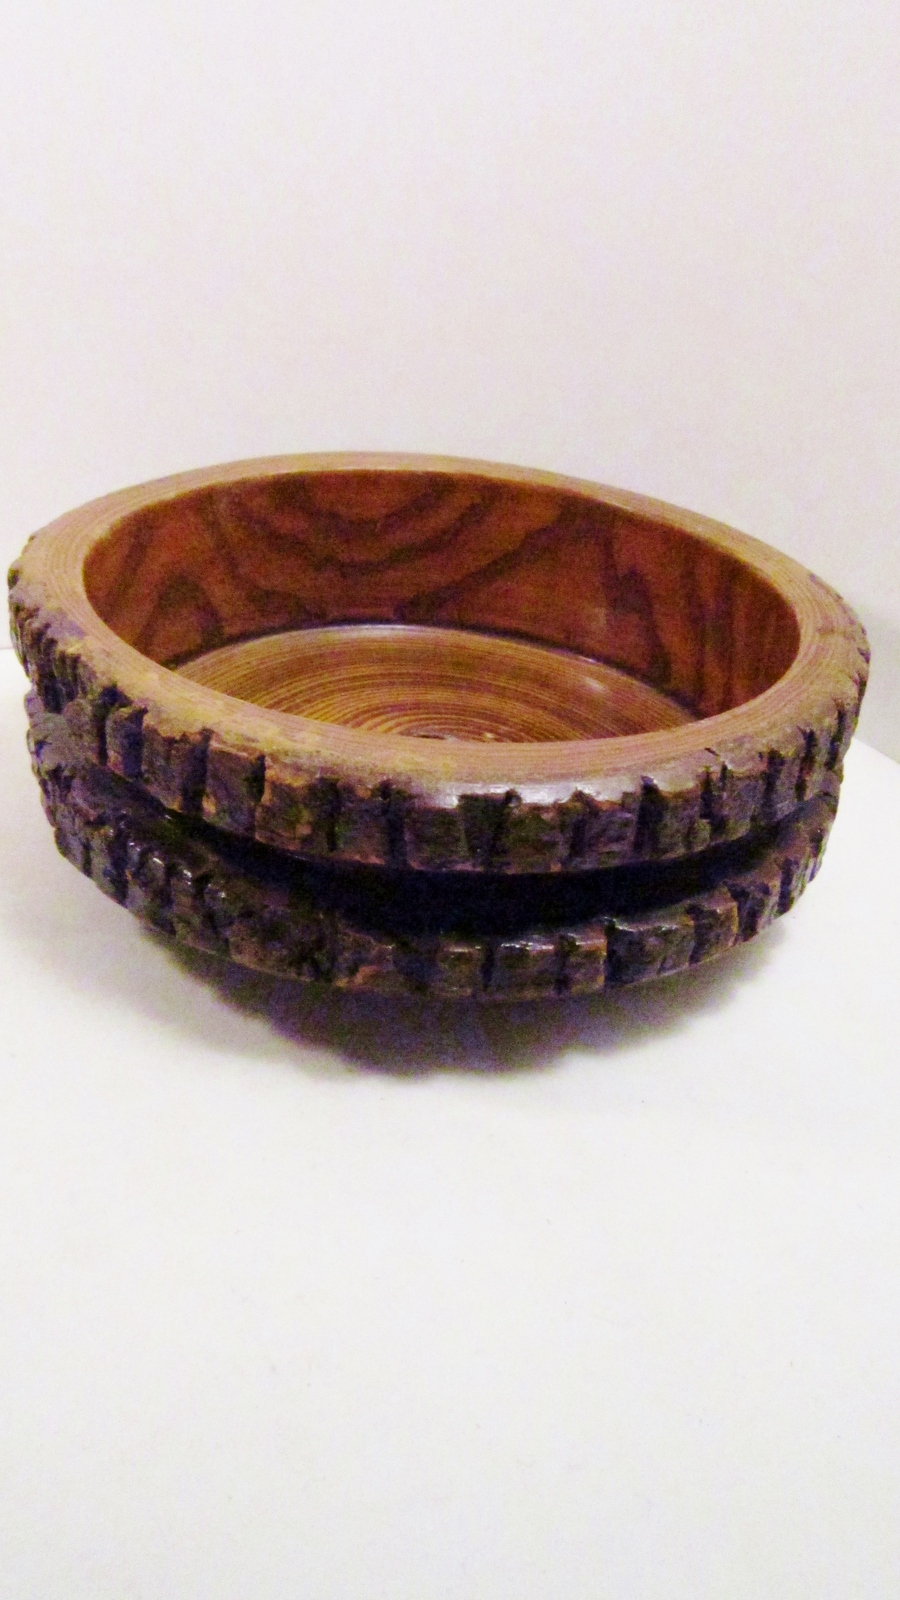 Rustic Wooden Stump Bowl, Natural Bark, Fine Grain, 9 inches across